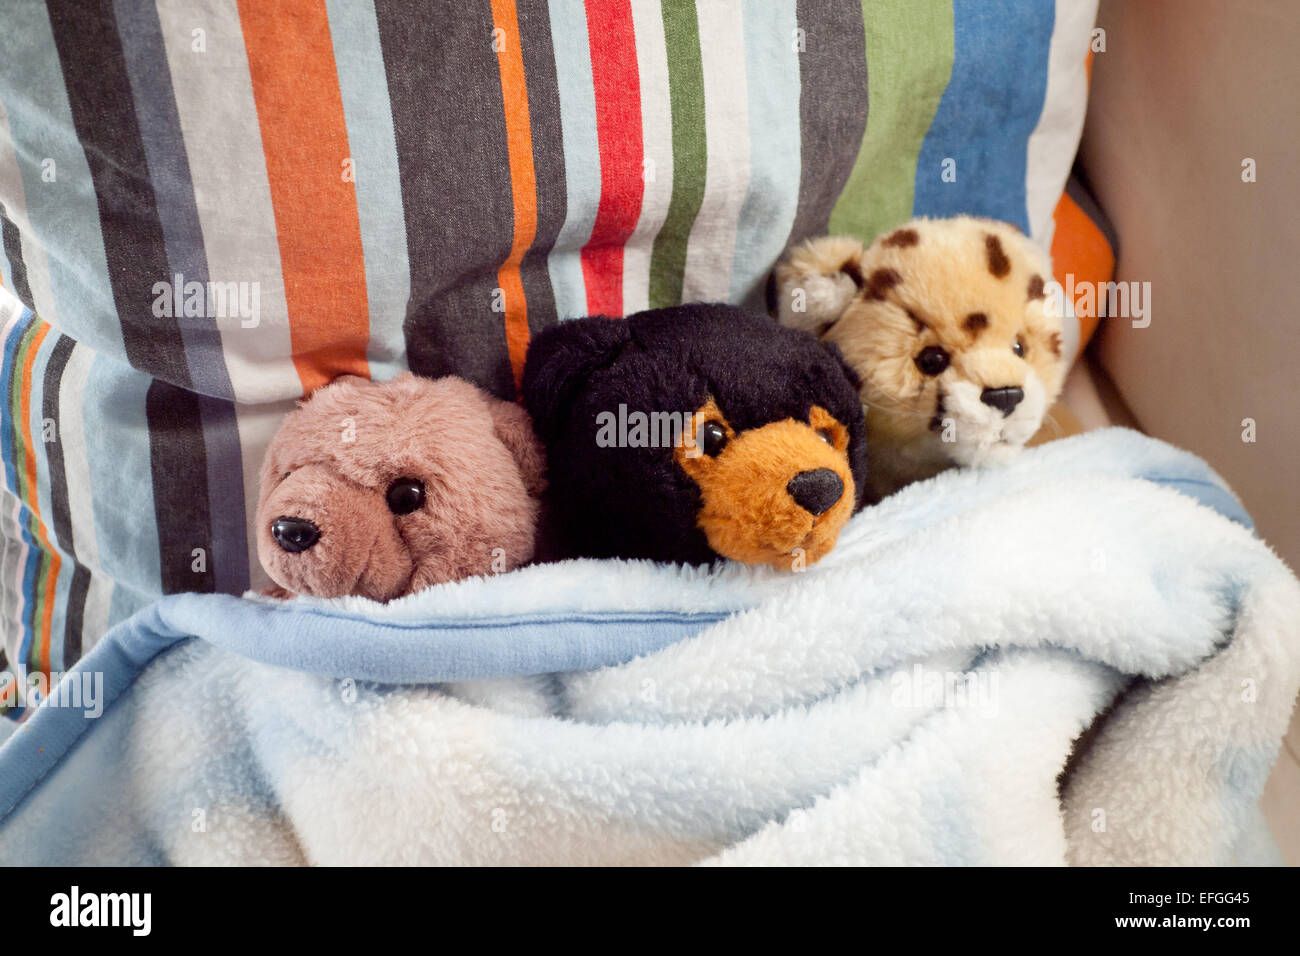 Two stuffed bears and one stuffed cheetah, cozy in a blanket. - Stock Image